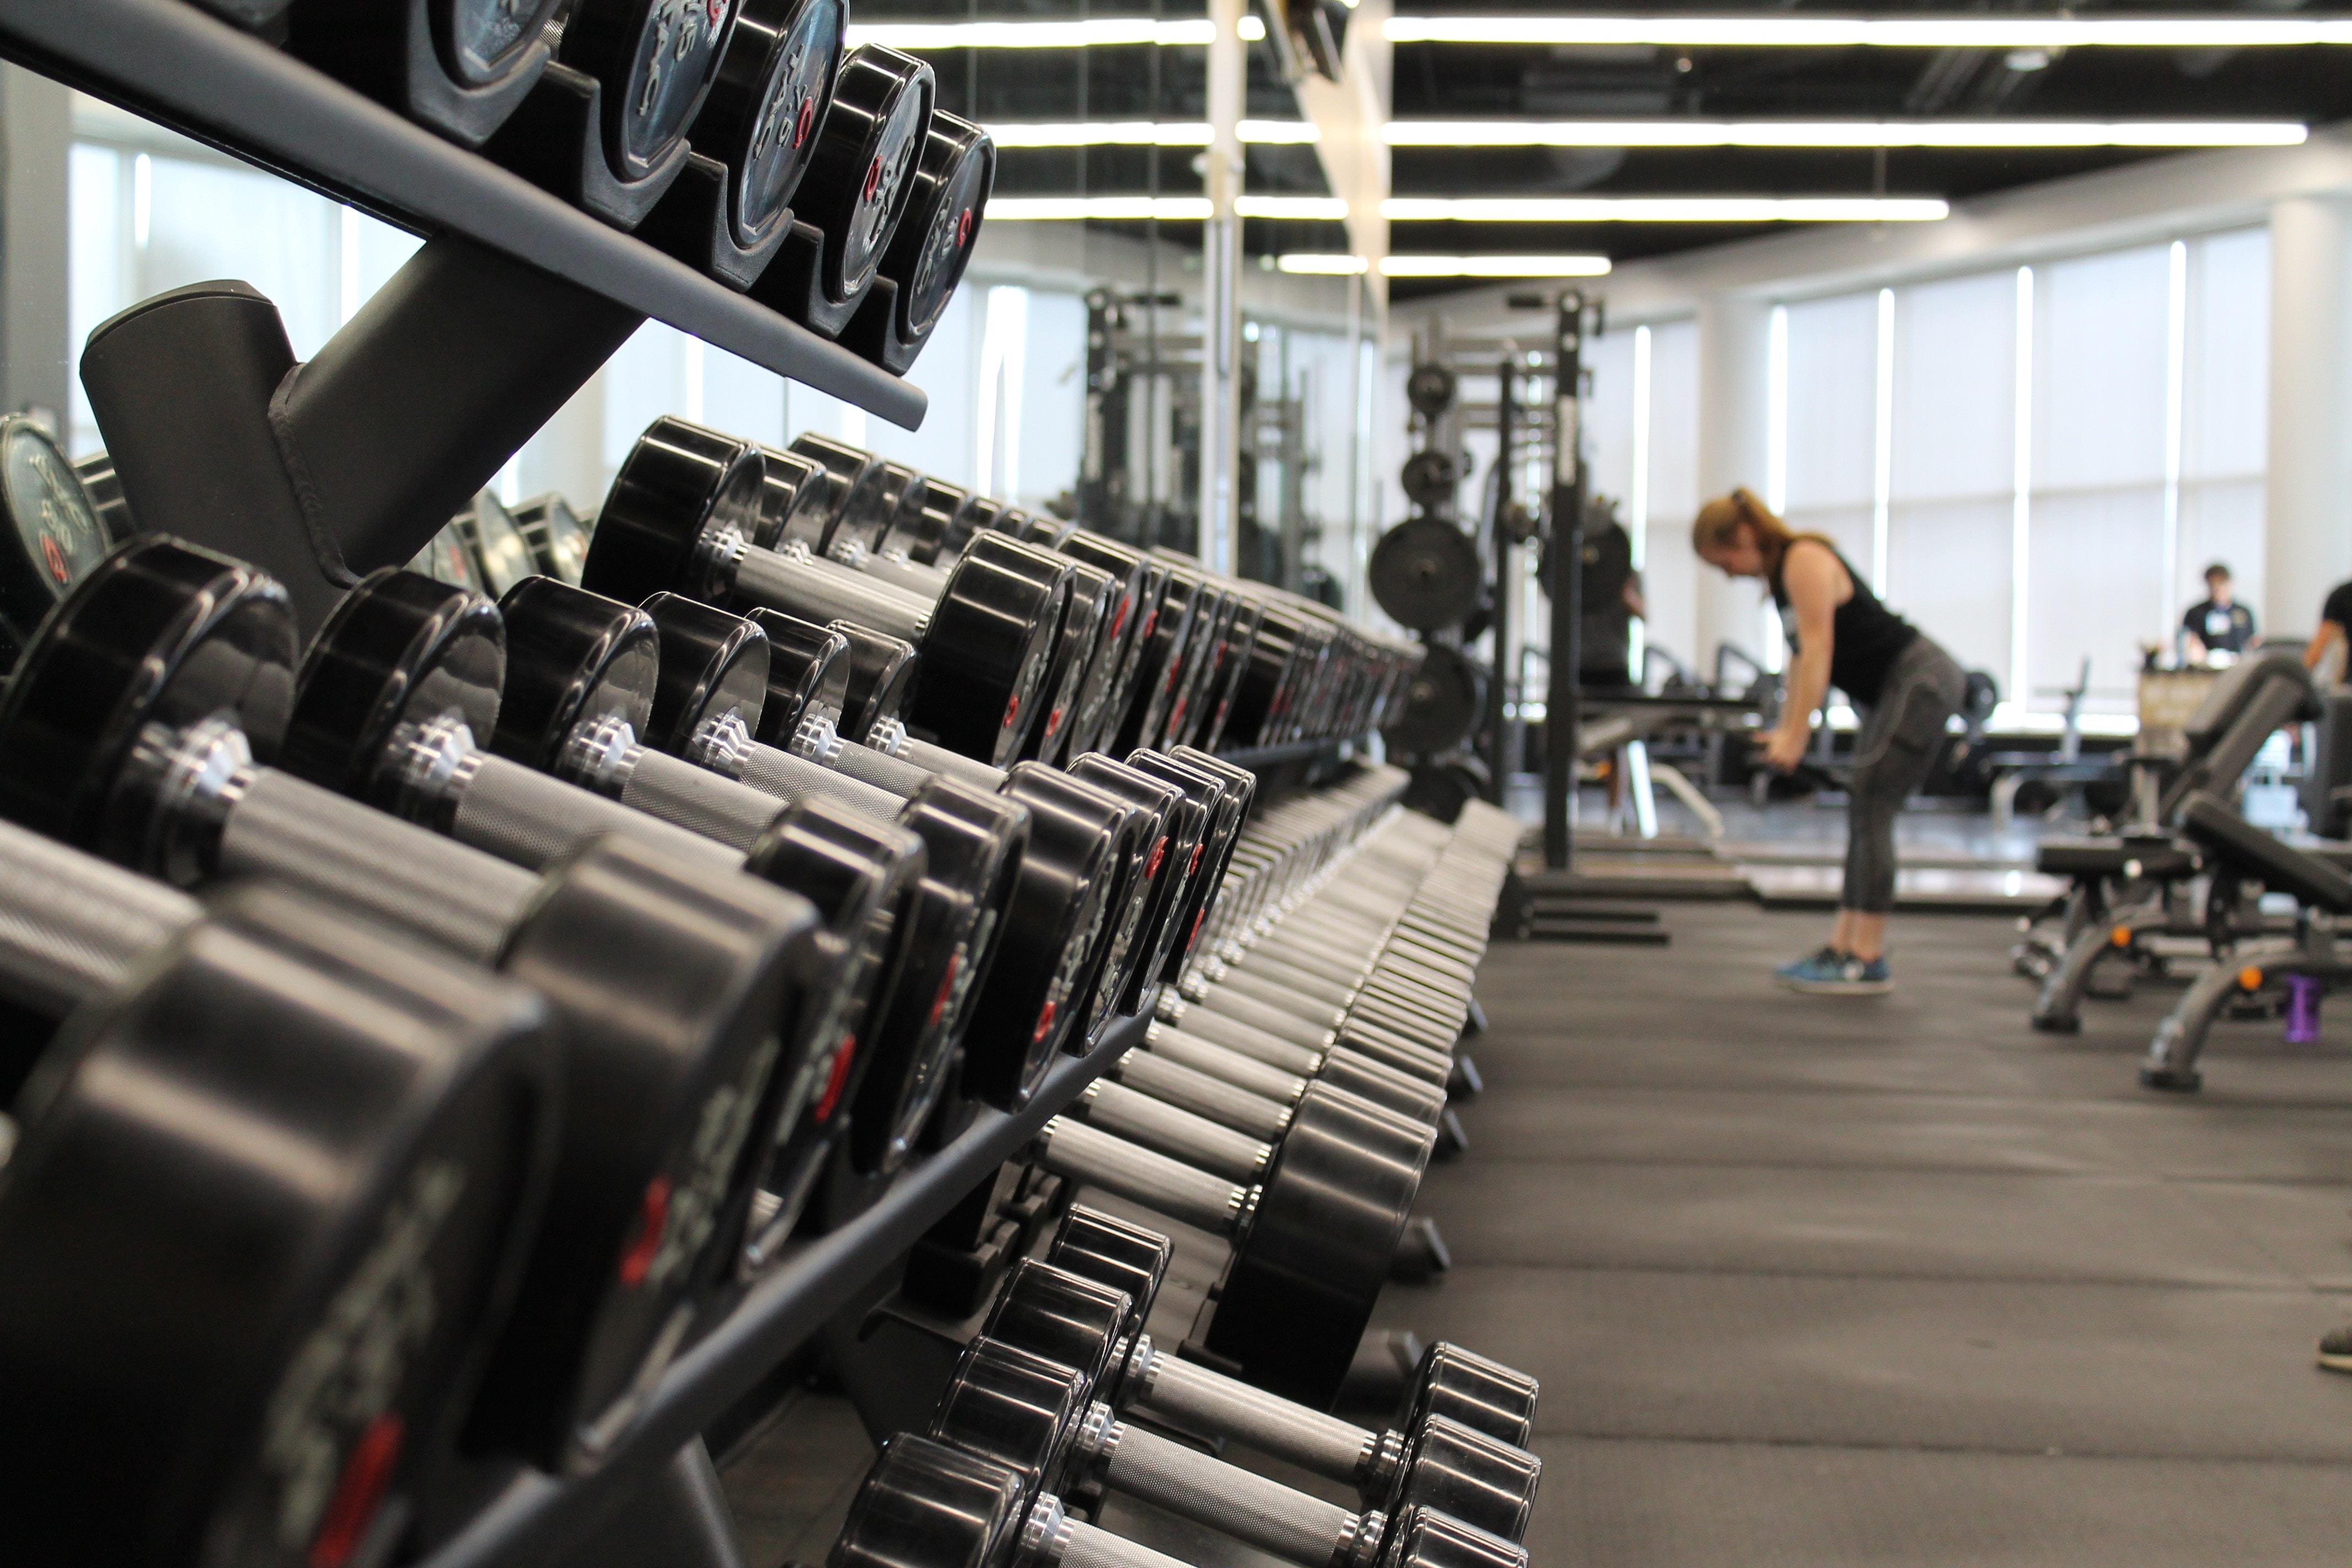 The Sports Archives Blog - The Sports Archives - In-Home vs. At-Gym Training: Pros and Cons